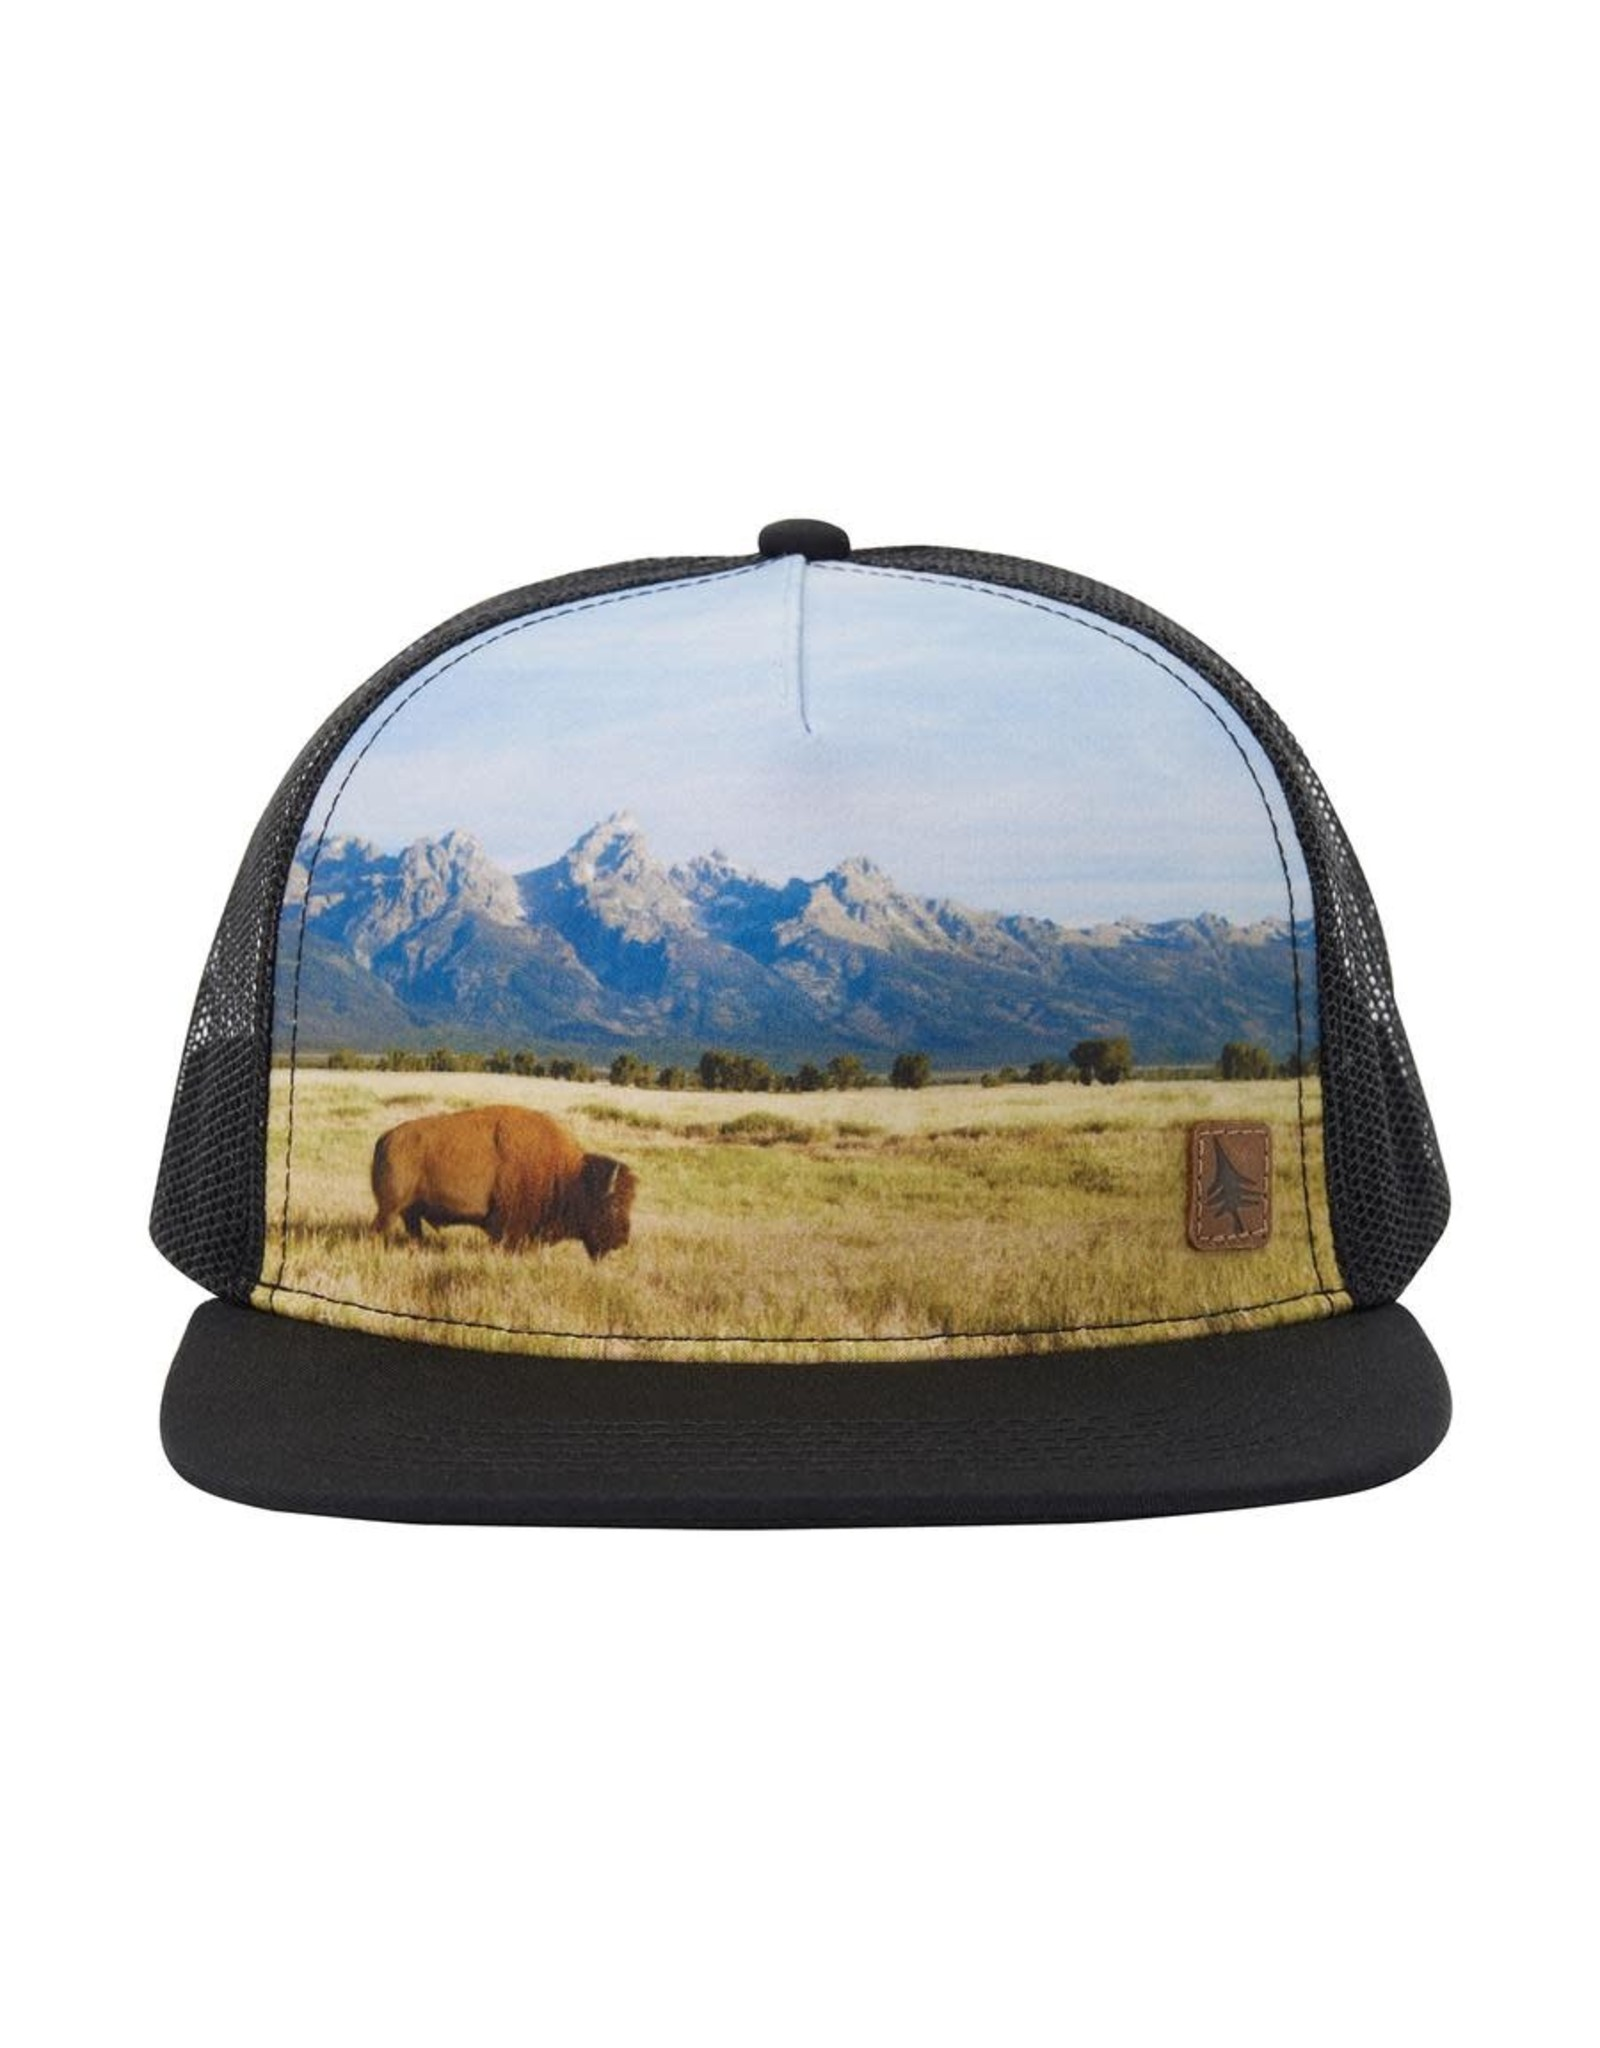 Hippy Tree HT Rangeland Cap: Black- O/S